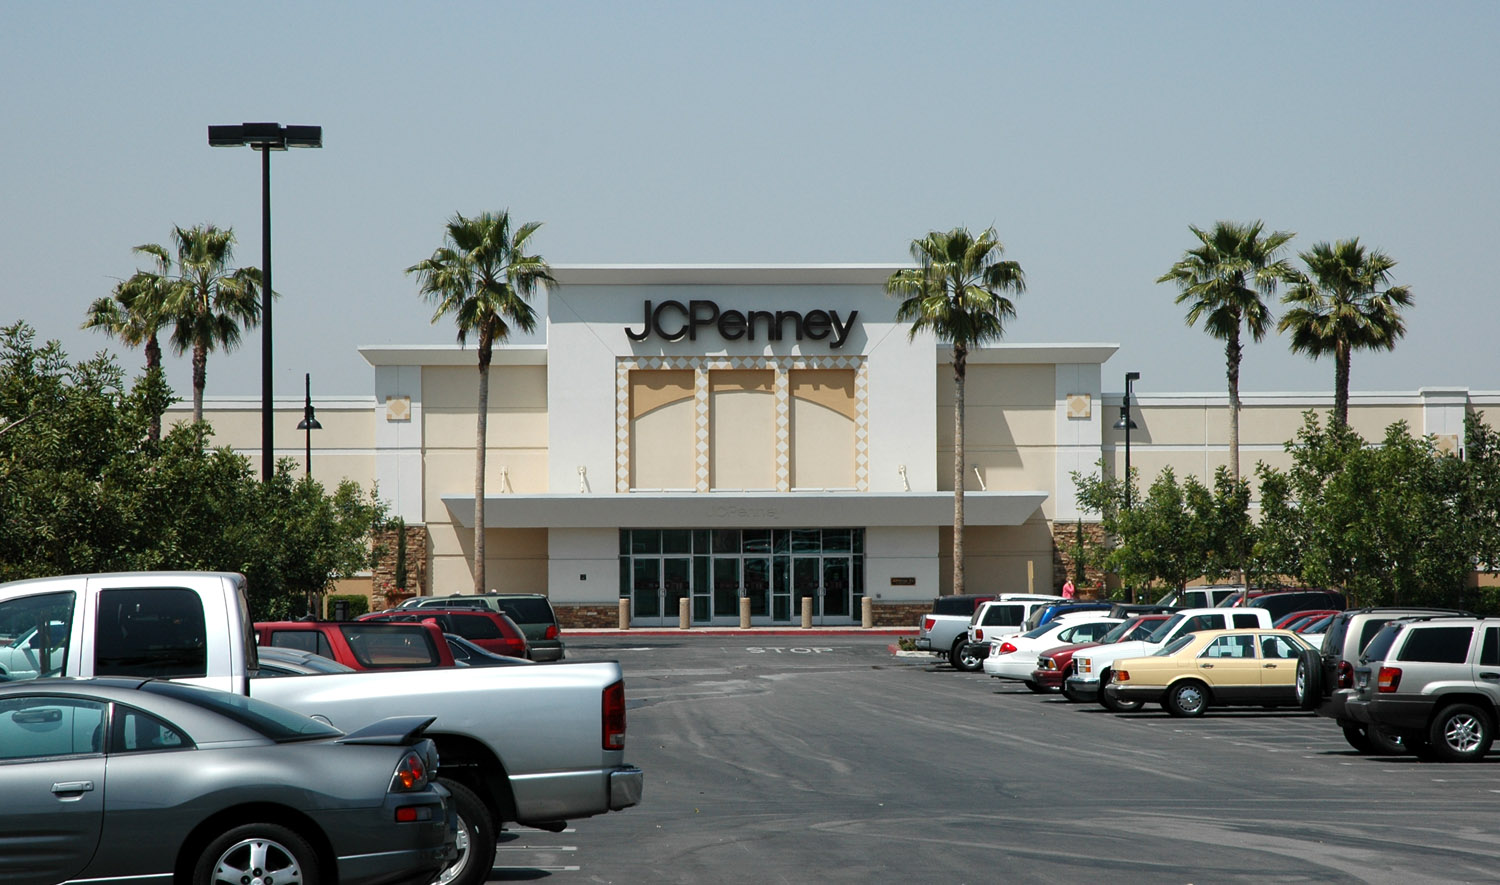 redlands_town_center_jcpenney